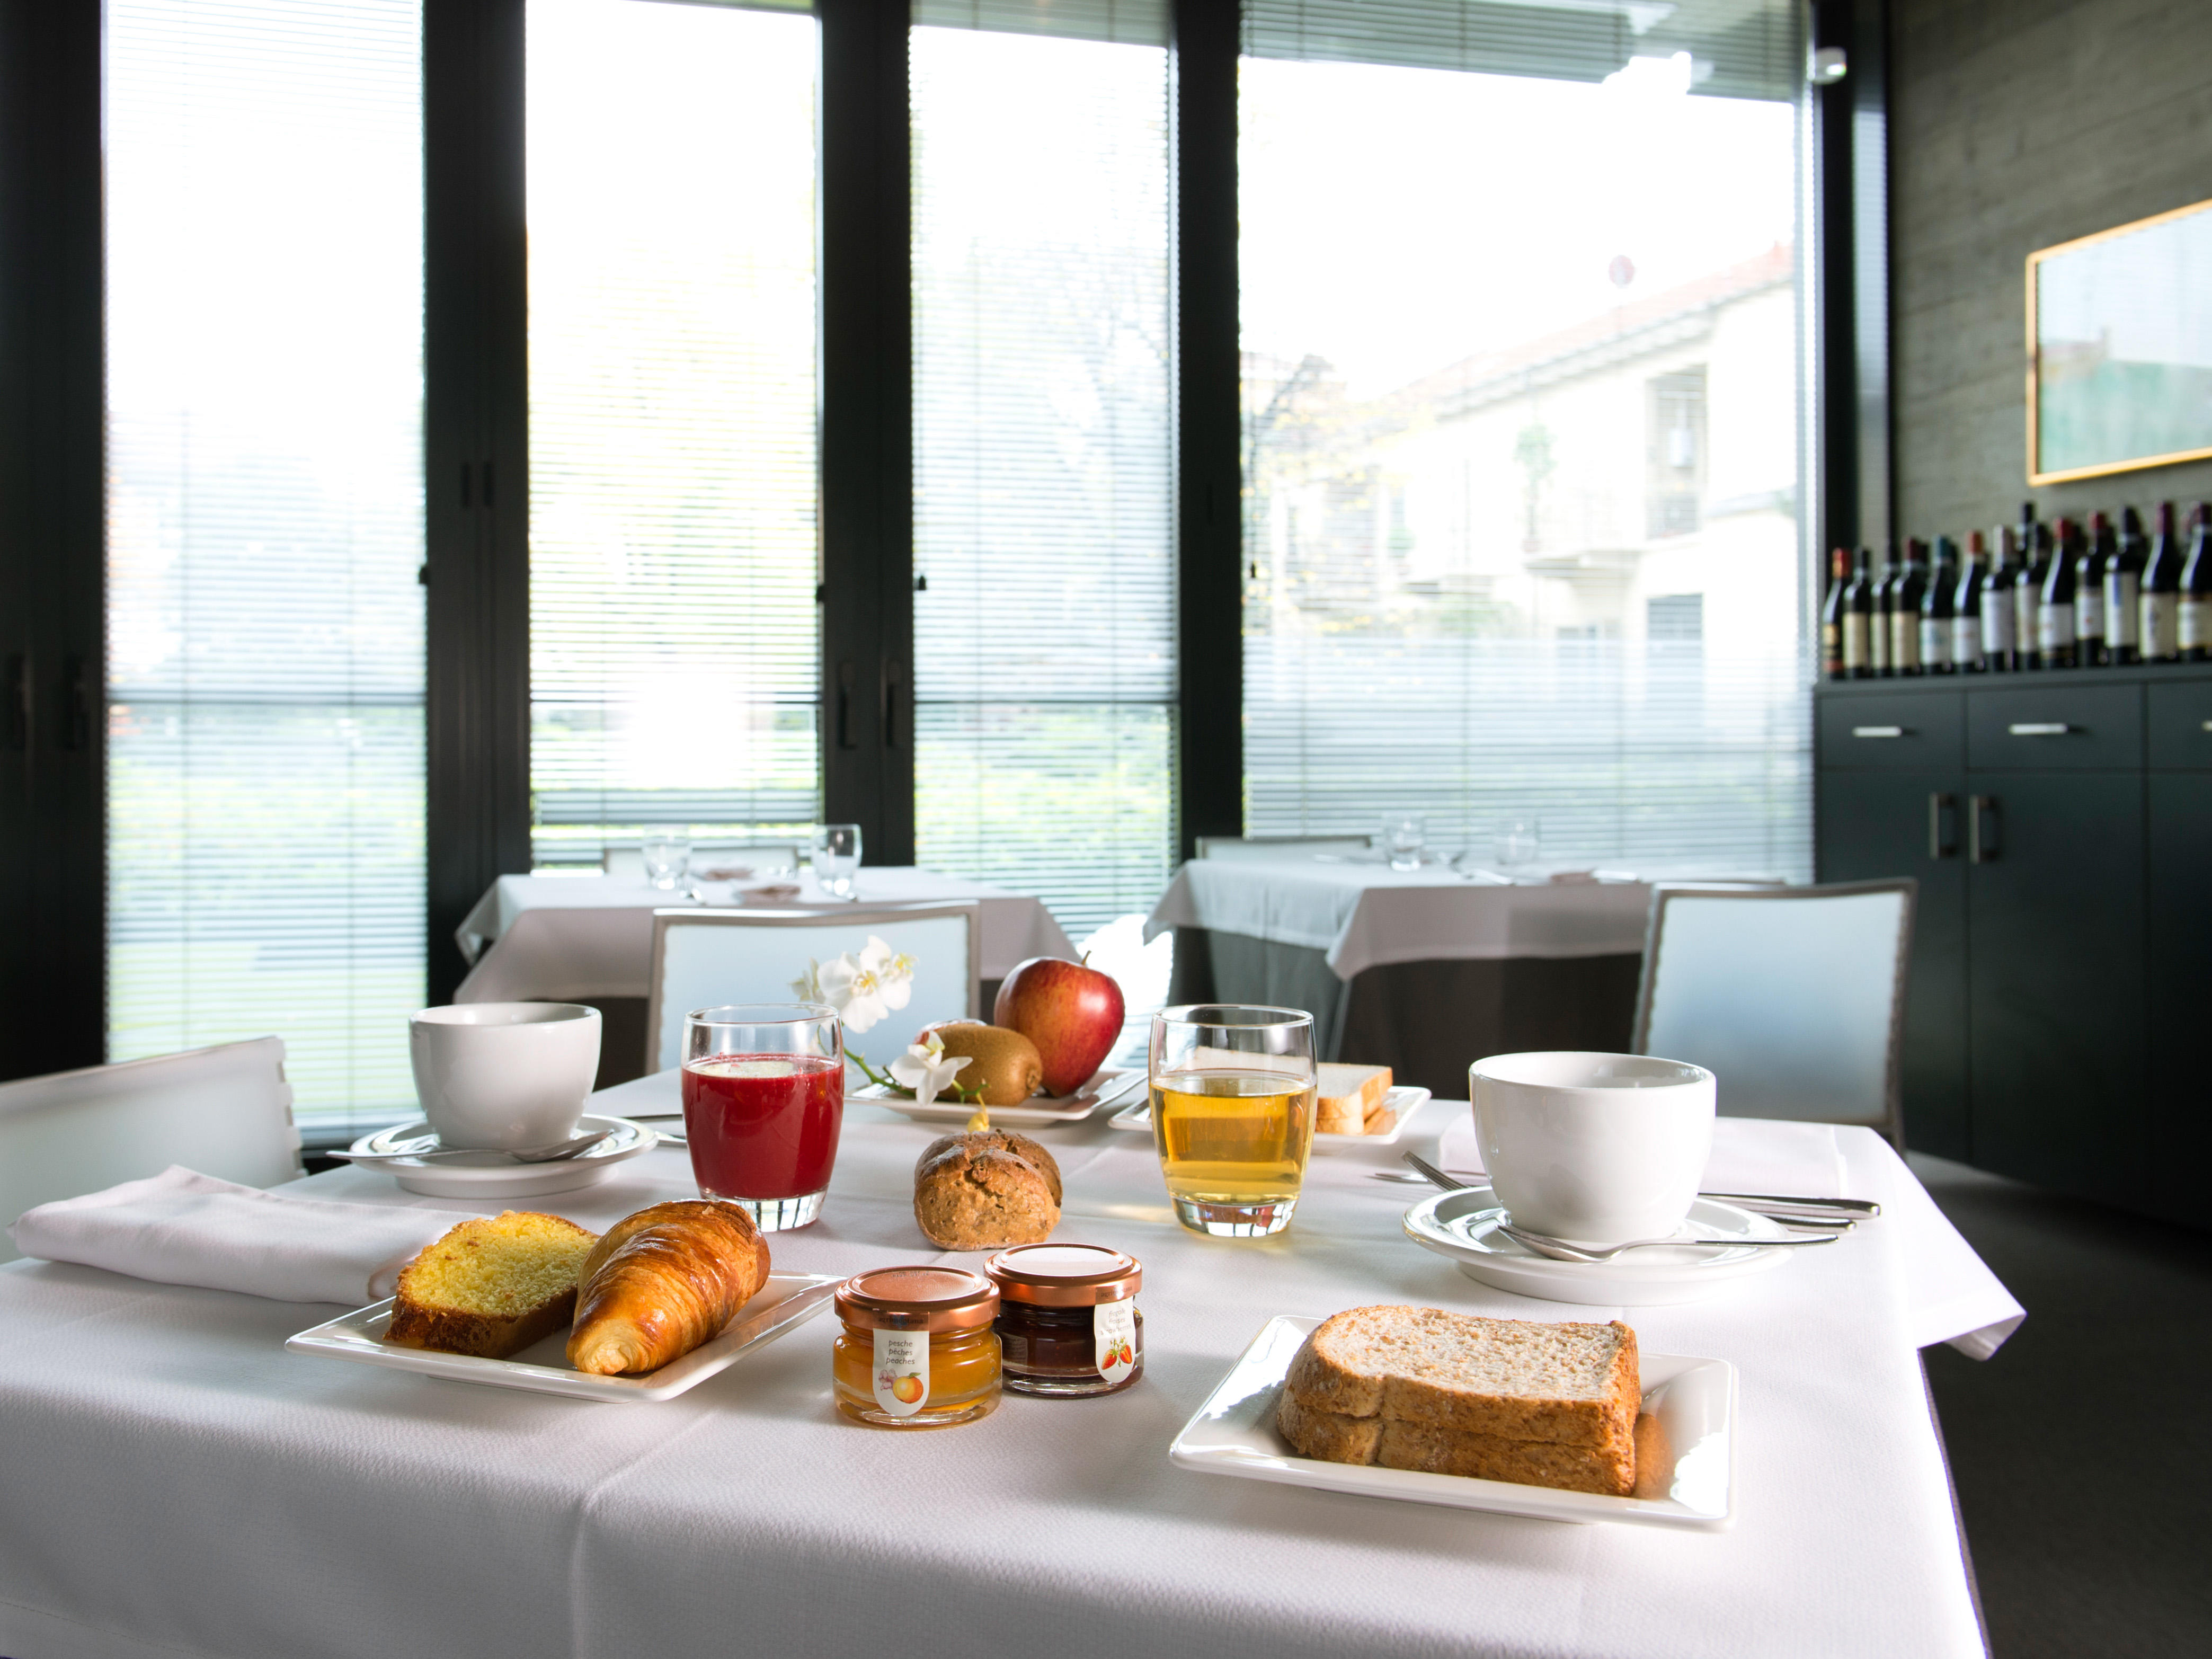 Hotel in Turin with breakfast